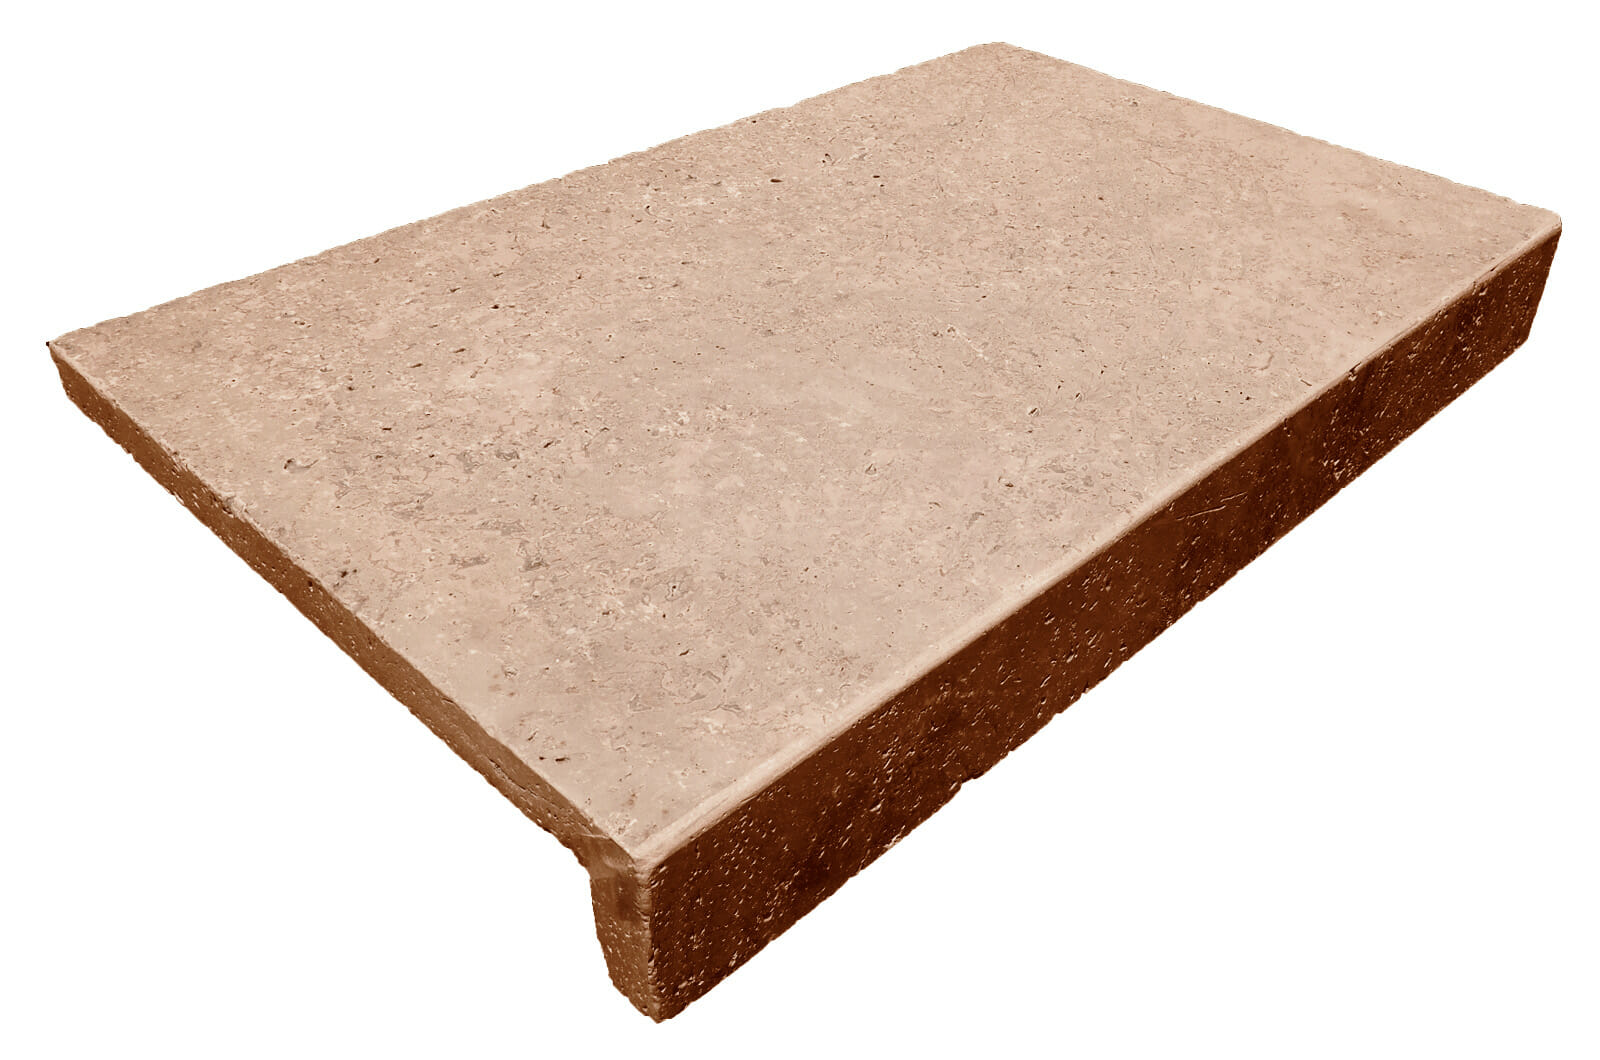 NOCE TRAVERTINE DROP FACE POOL COPING TILE